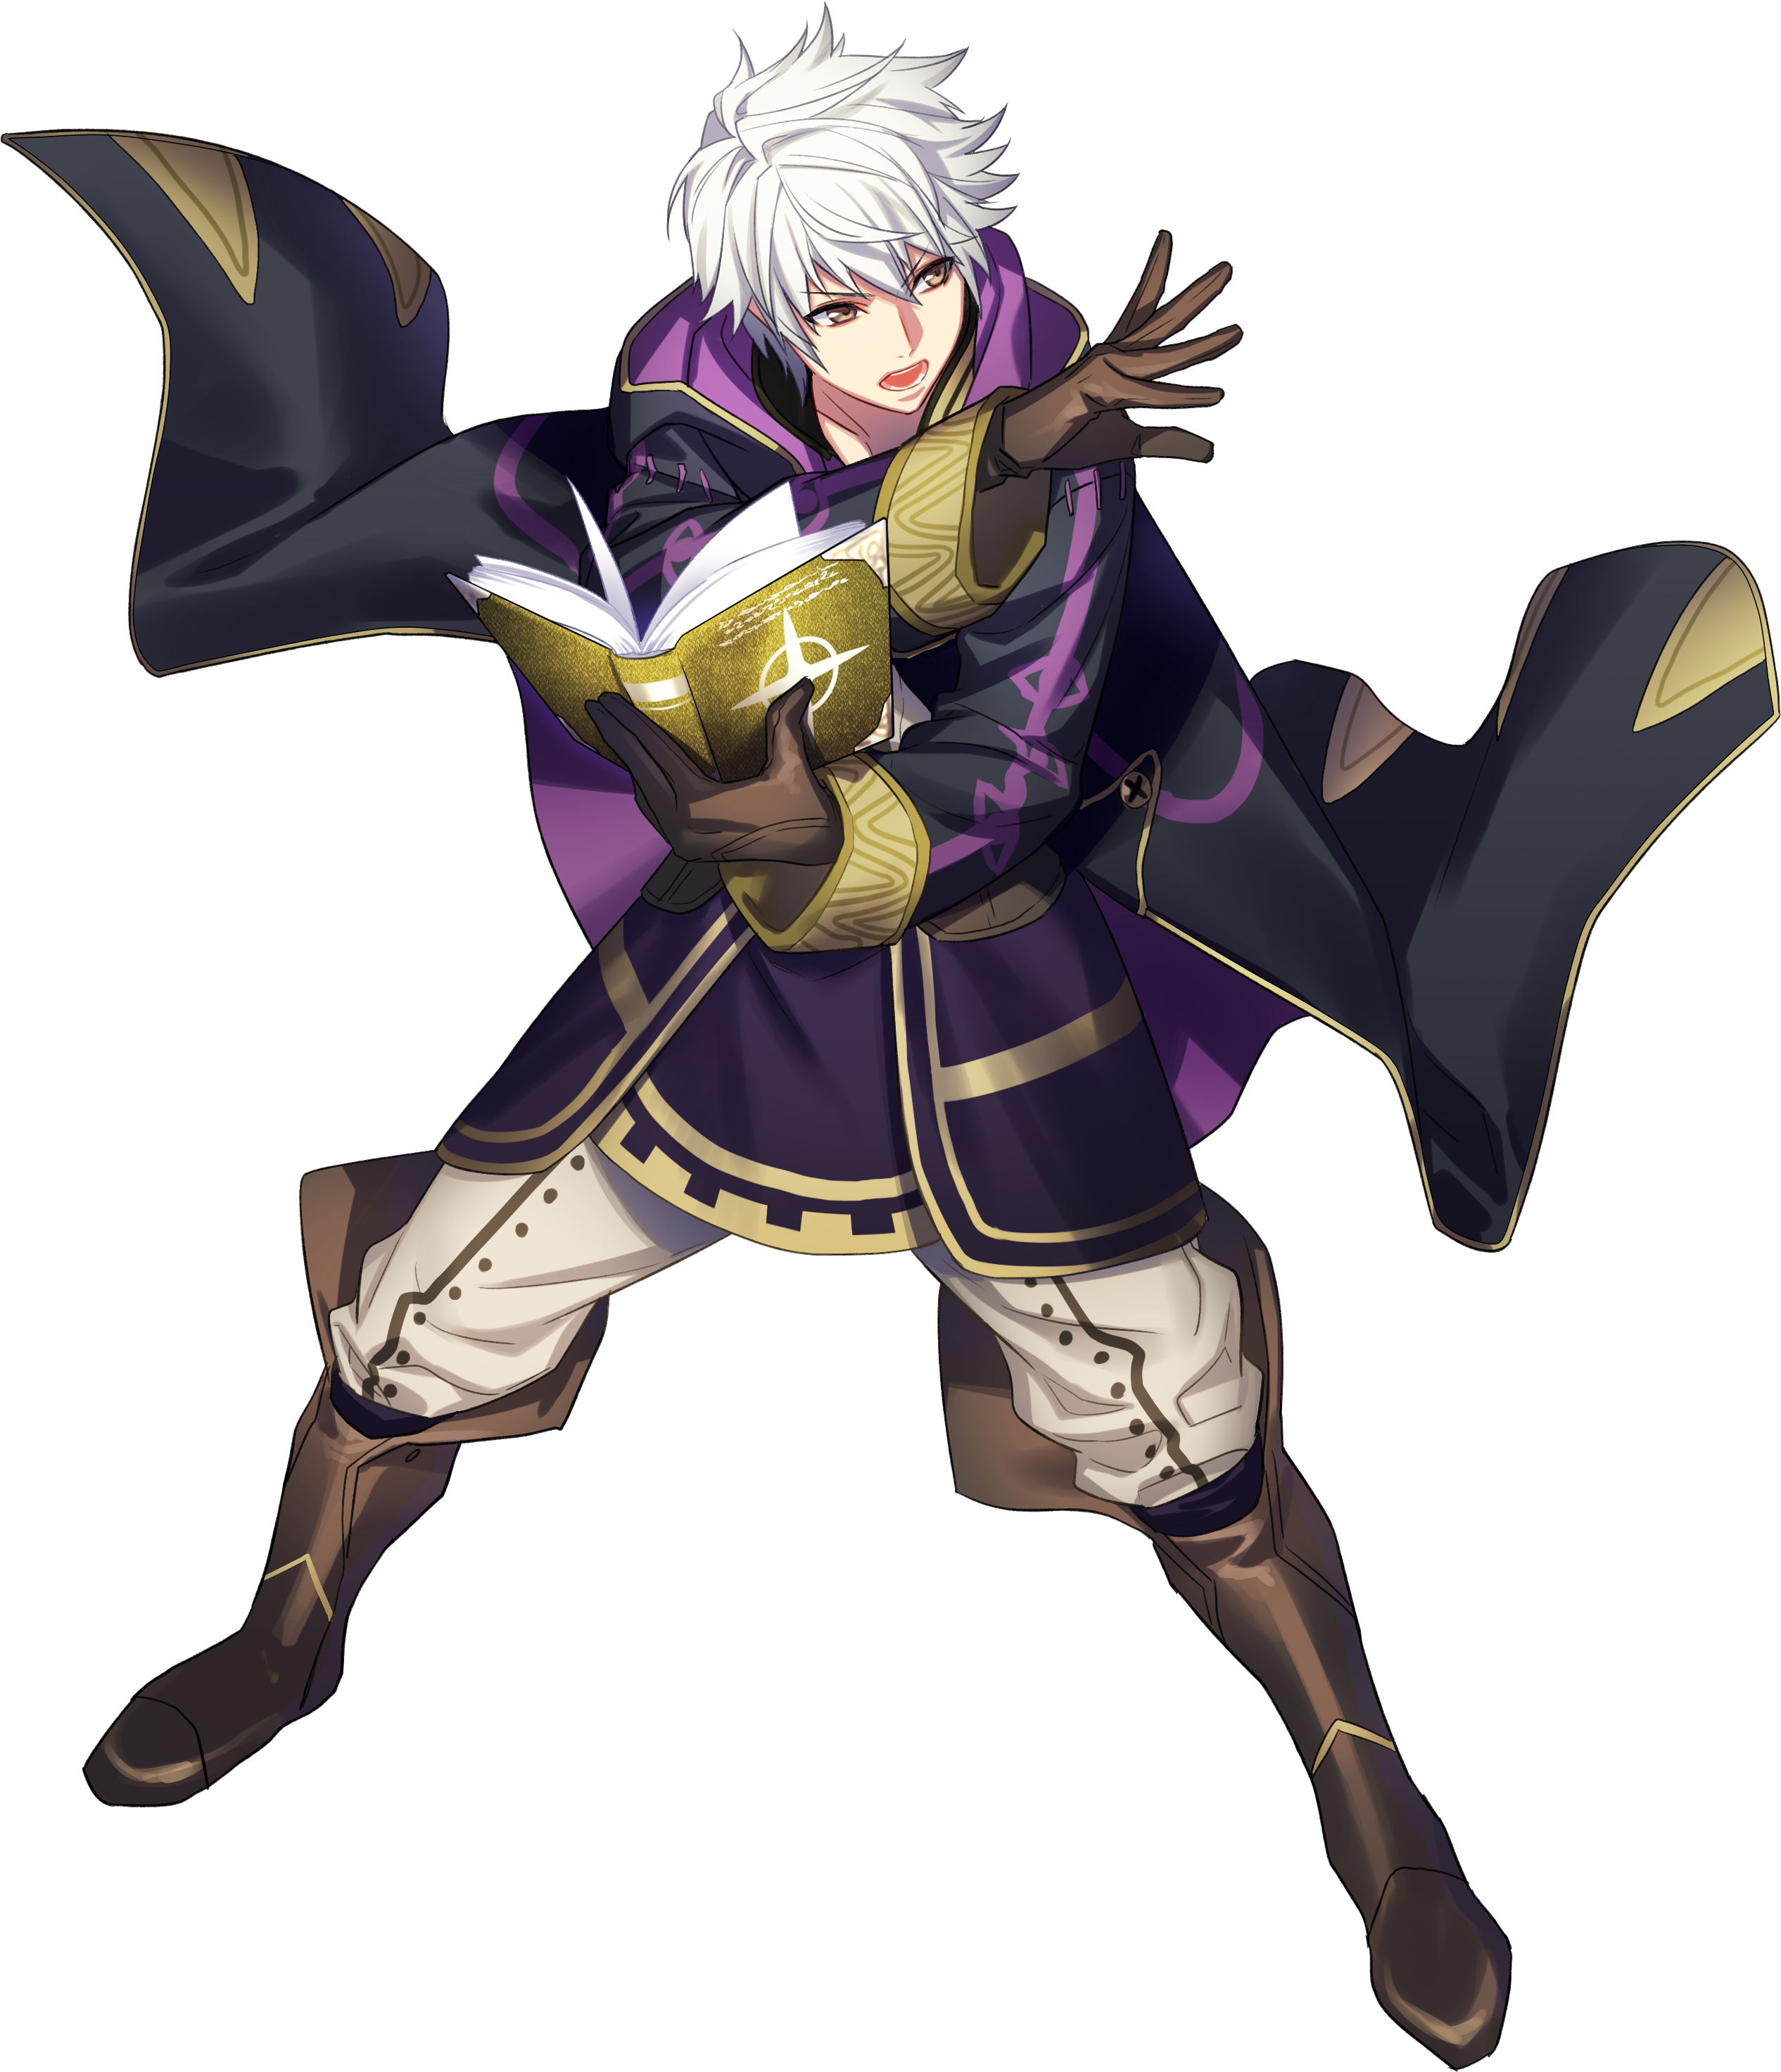 Vignette3 Wikia Nocookie Net Fireemblem Images A Ae Robin1 Png Revision Latest Cb X3d 20170122062406 Personagens De Anime Mago Rpg Personagens Masculinos